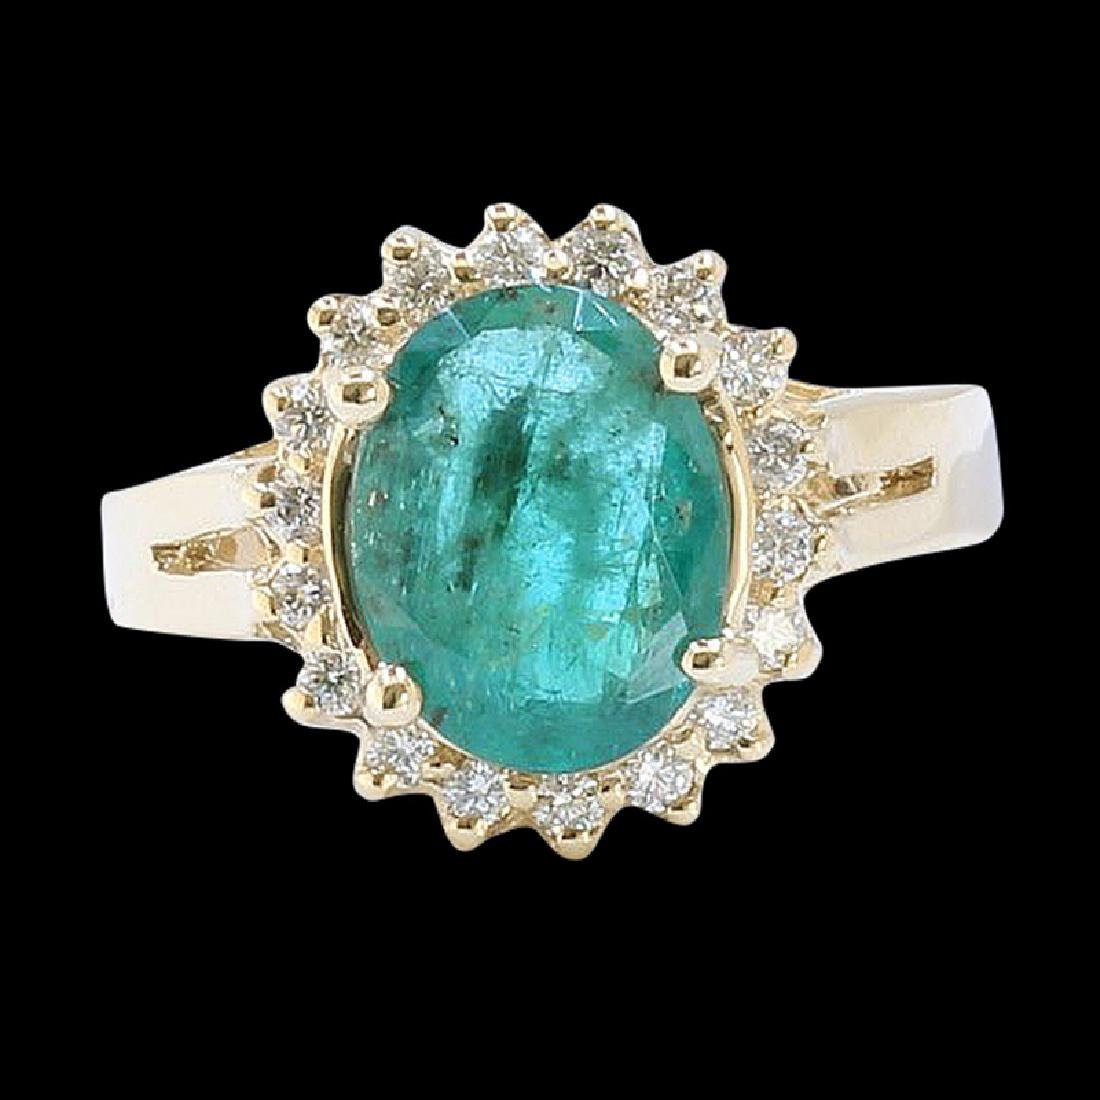 7.07CT NATURAL COLUMBIAN EMERALD 14K Y/G RING